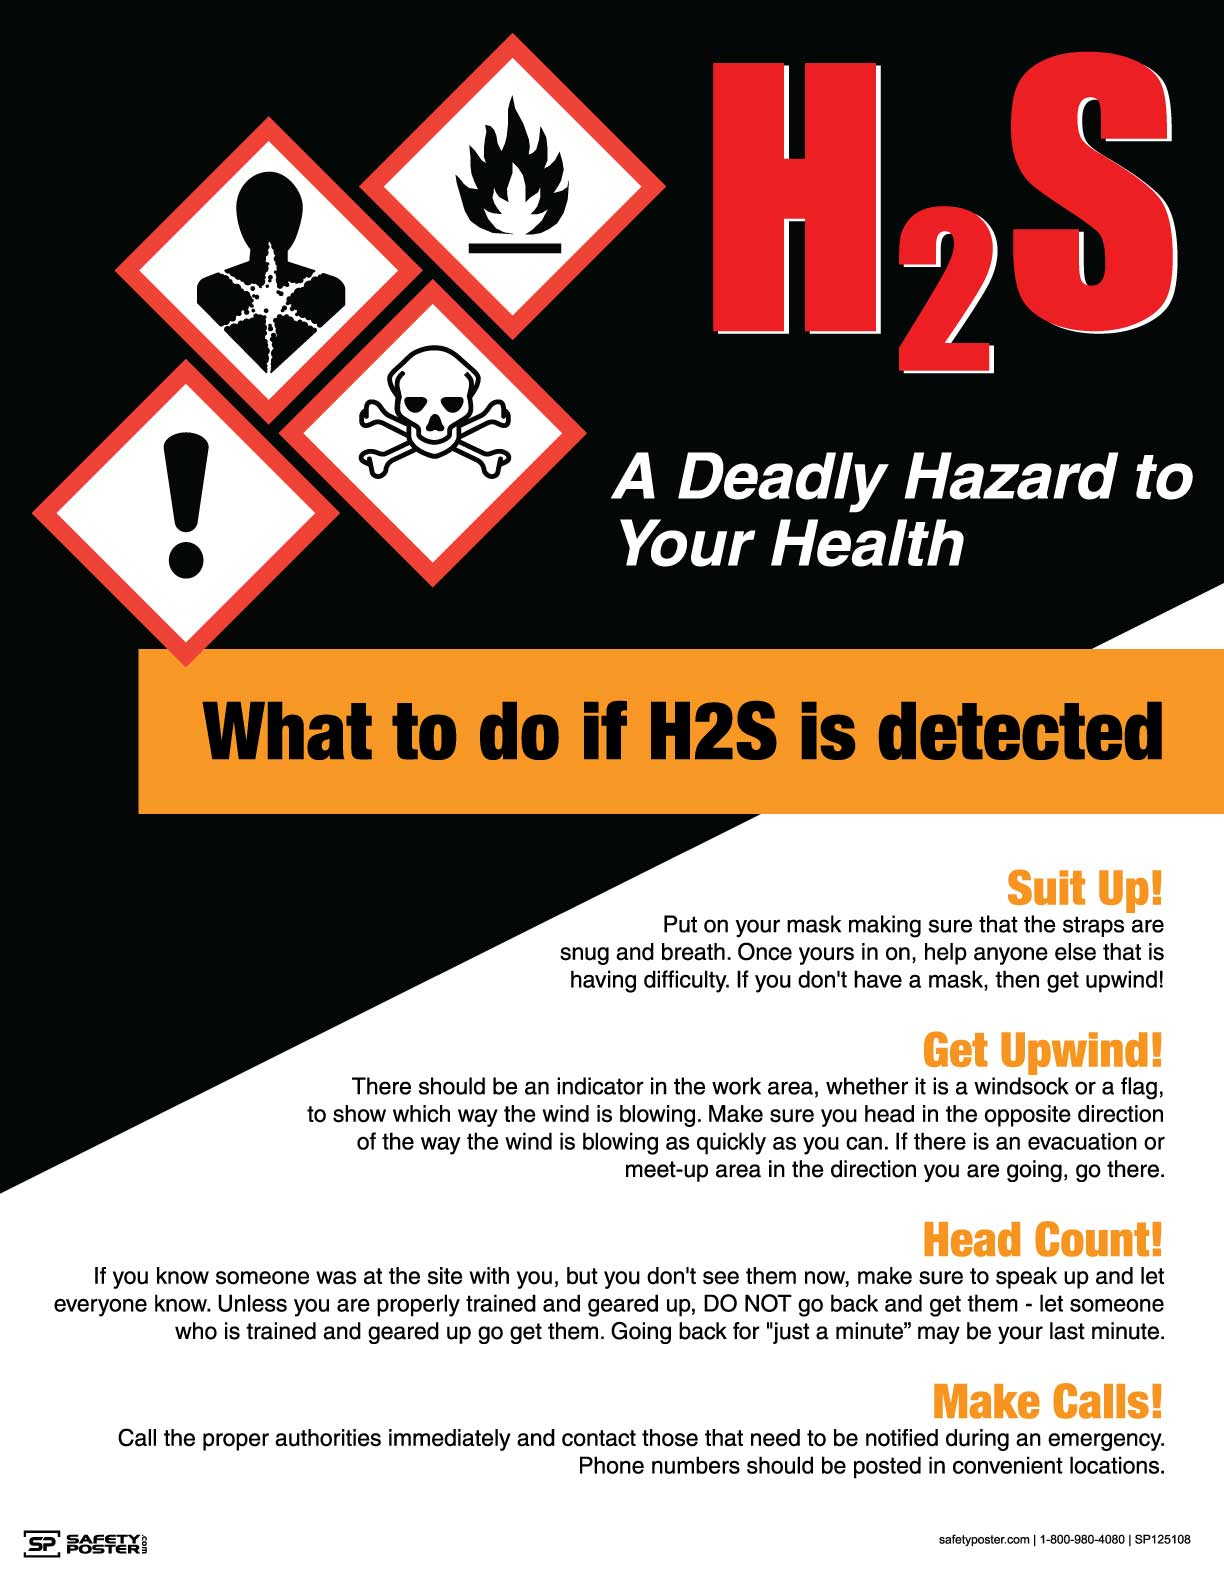 H2S A Deadly Hazard to Your Health - Safety Poster